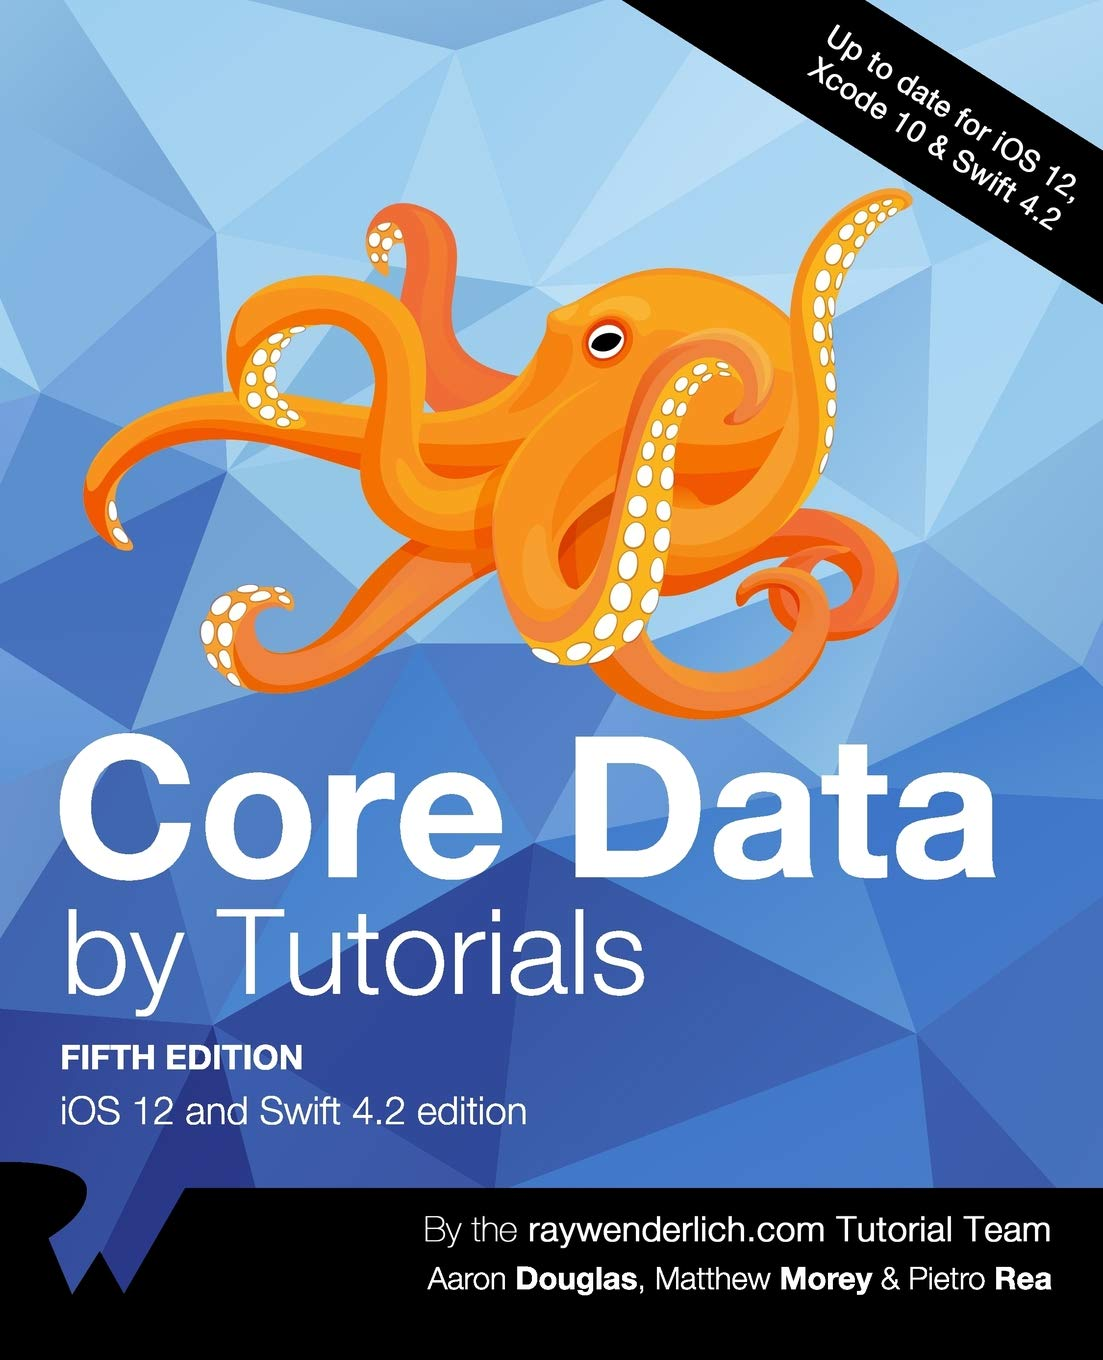 Core Data By Tutorials  IOS 12 And Swift 4.2 Edition